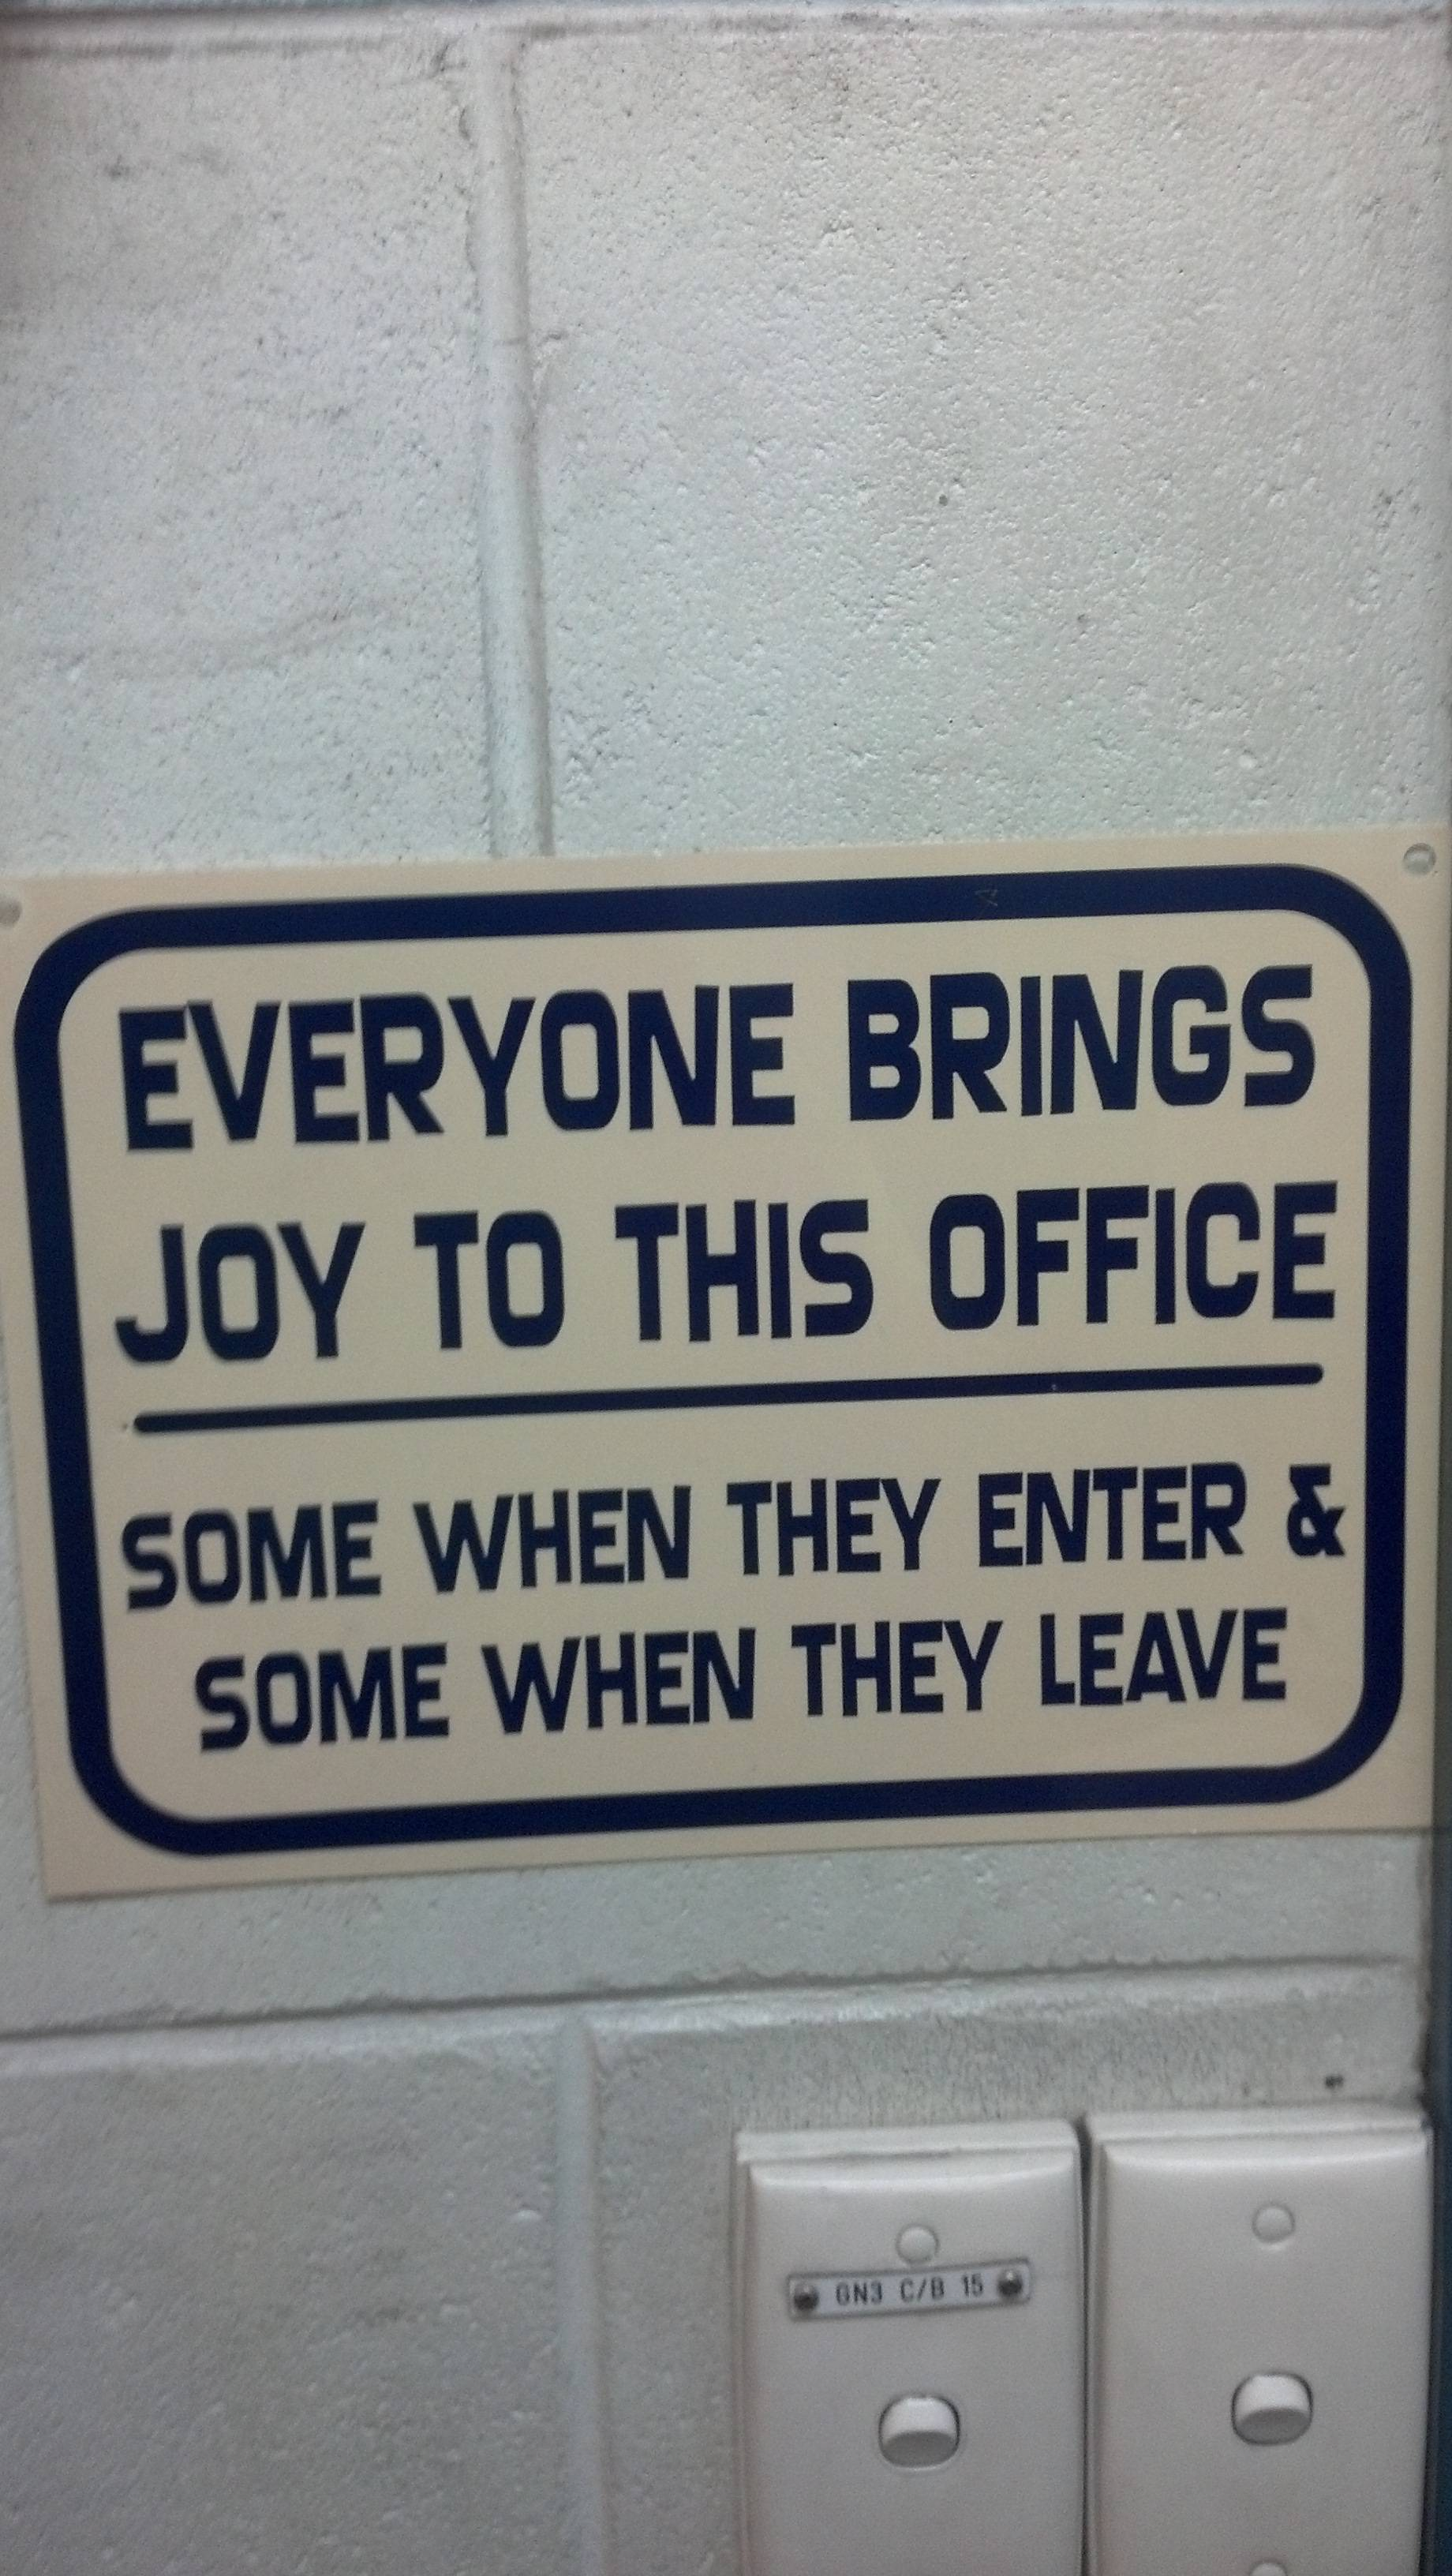 Recently got moved to a new office and saw this sign